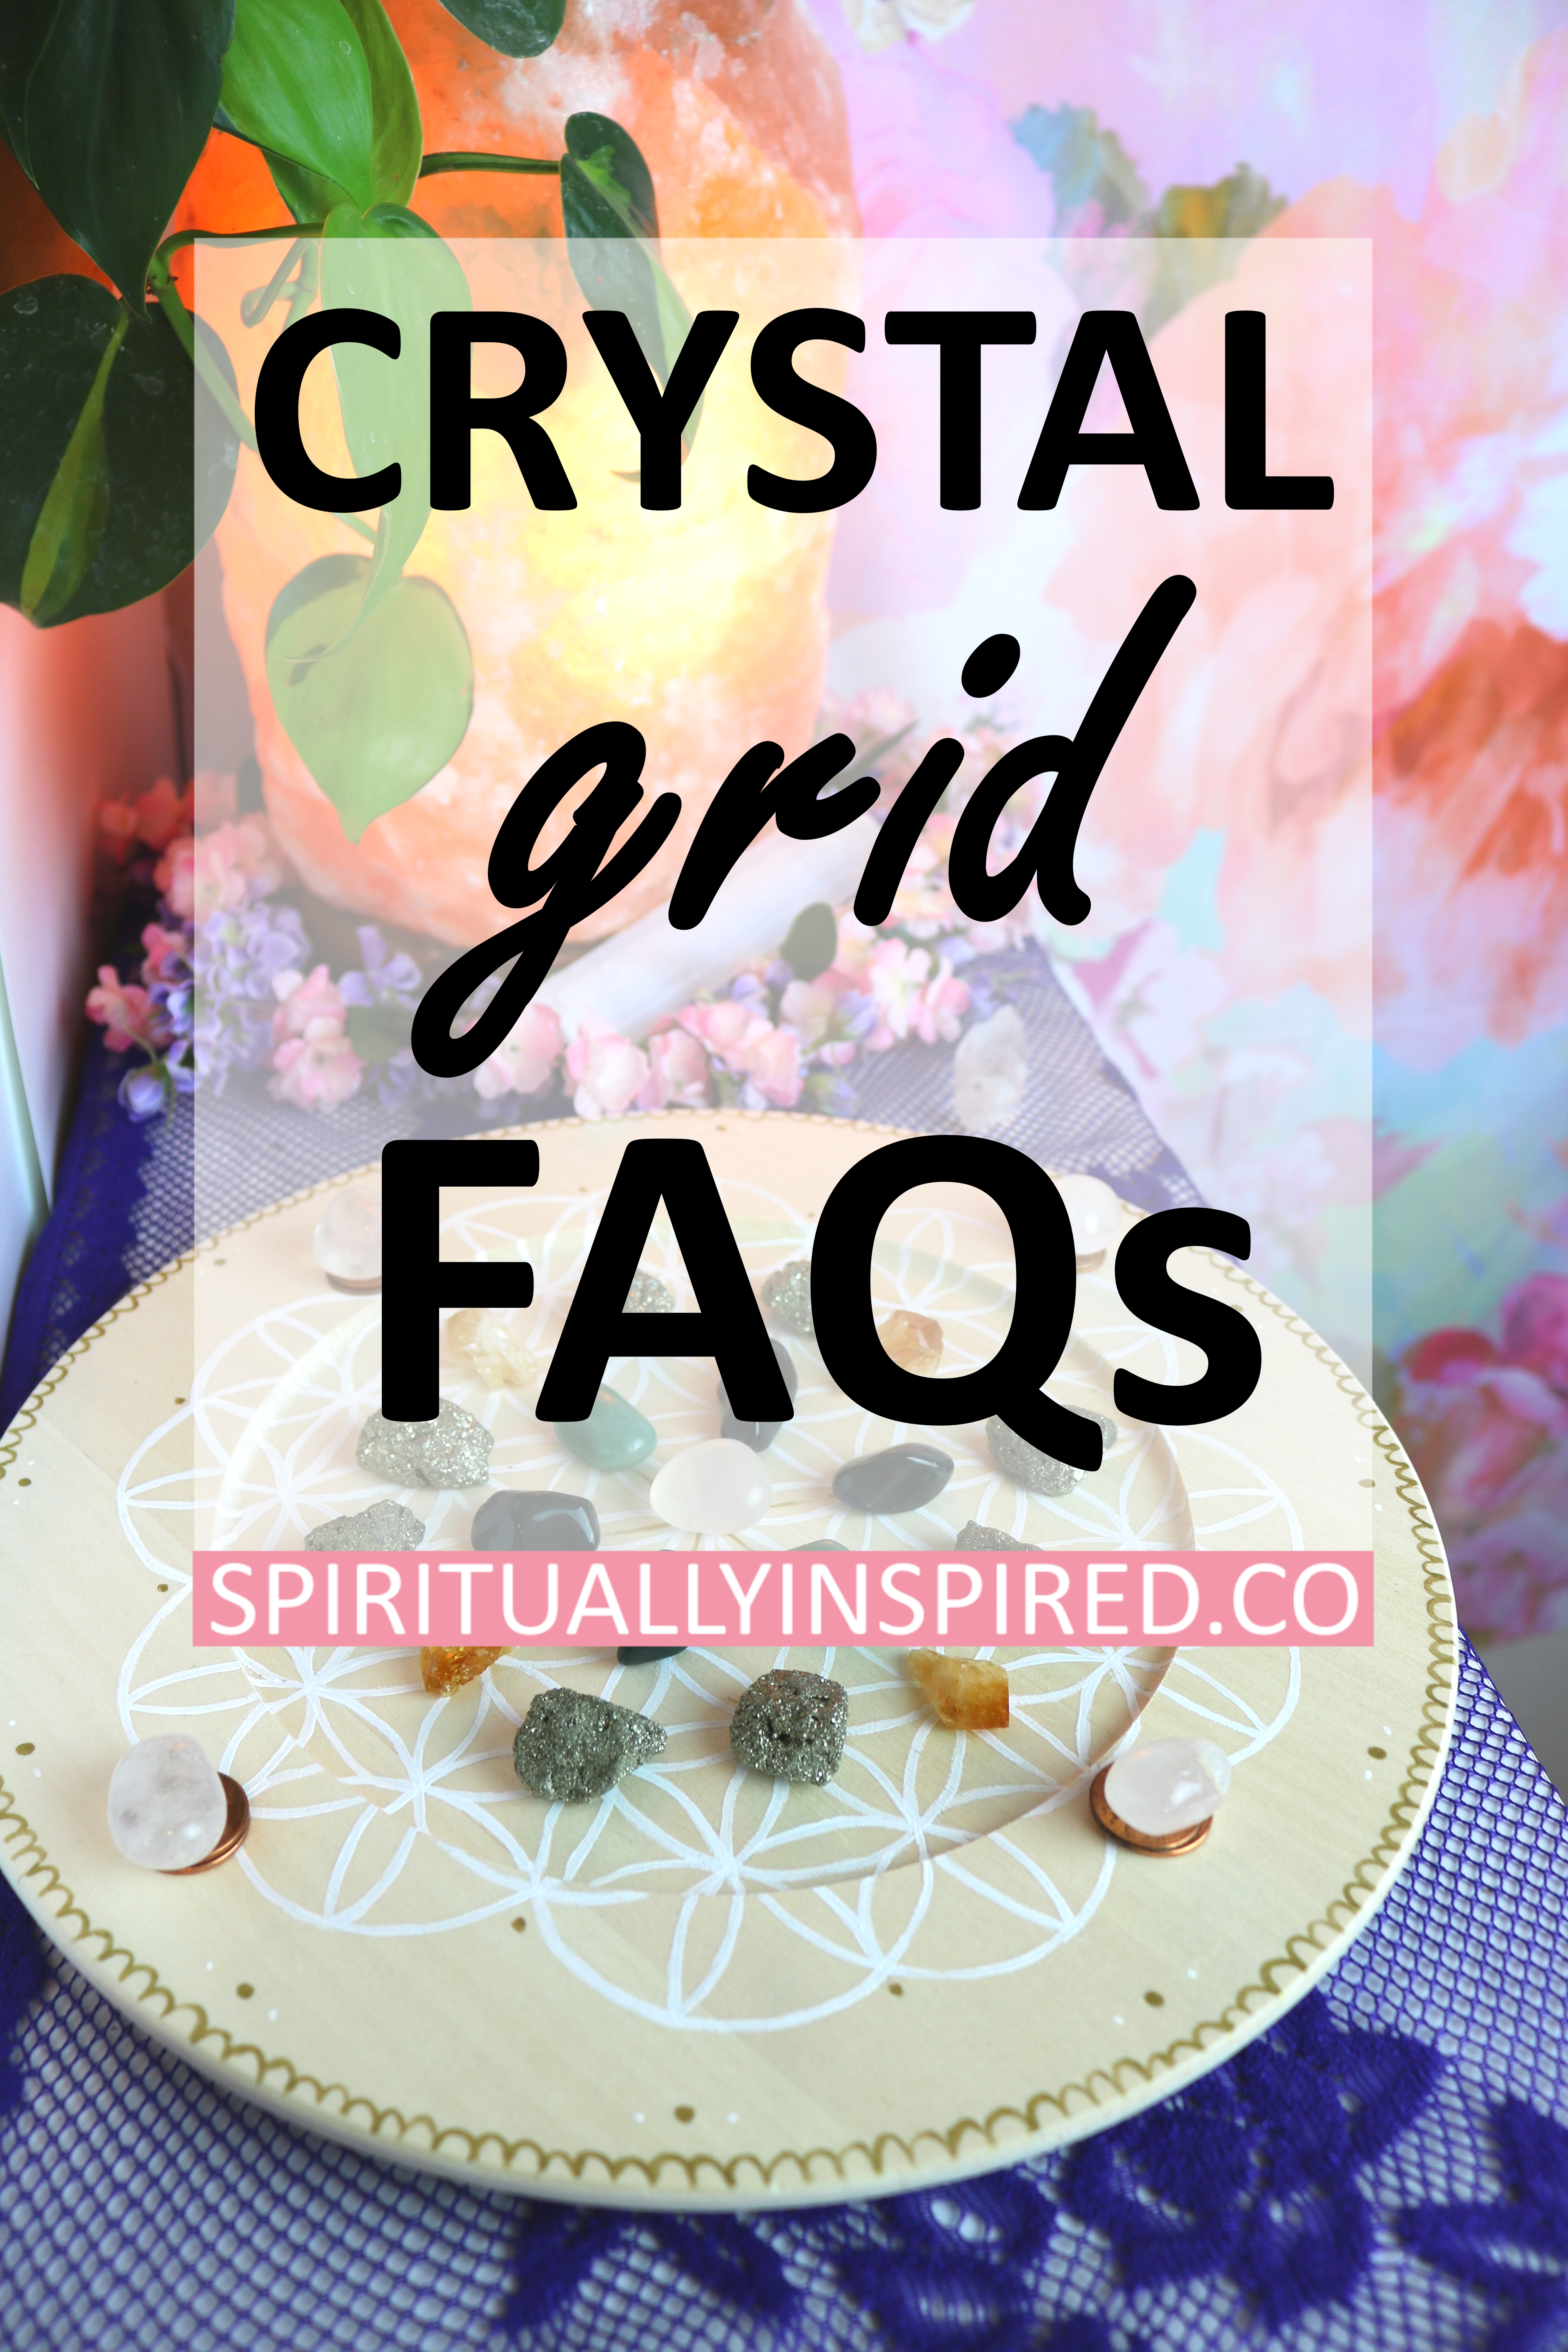 Mesmerized by all those beautiful crystal grid pictures? Time to learn everything there is to know about creating these masterpieces! All you need are some stones and a purpose. Learn step by step how to design and construct a powerful crystal grid for your sacred space.